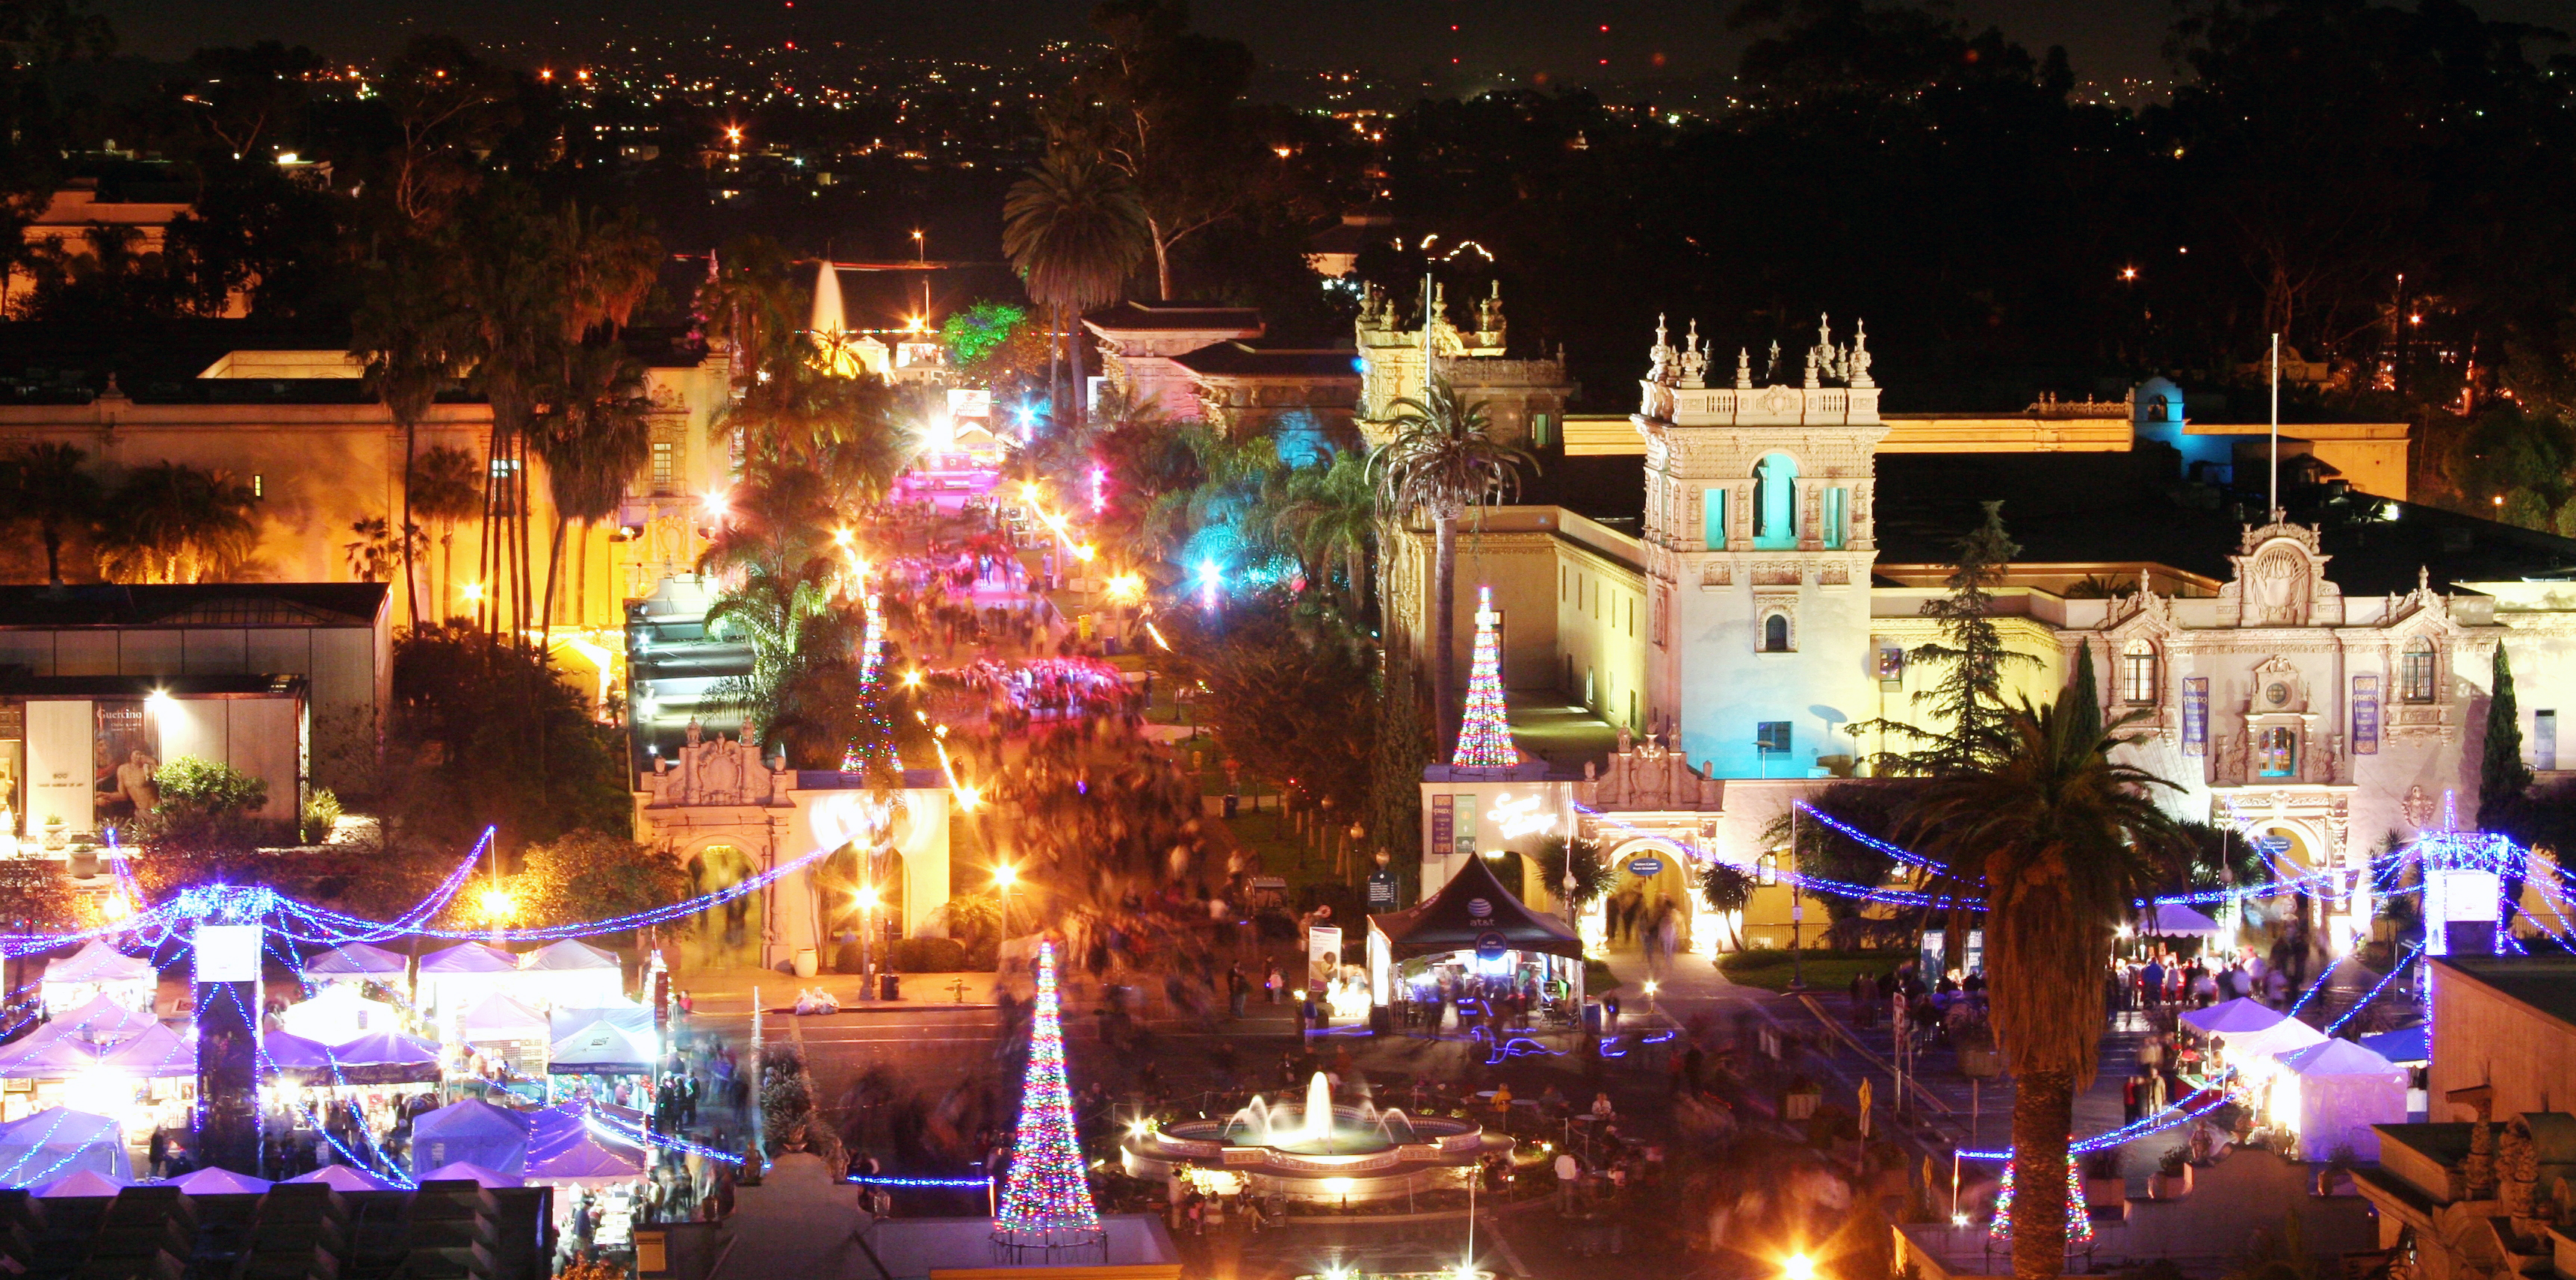 Balboa Park December Nights in San Diego